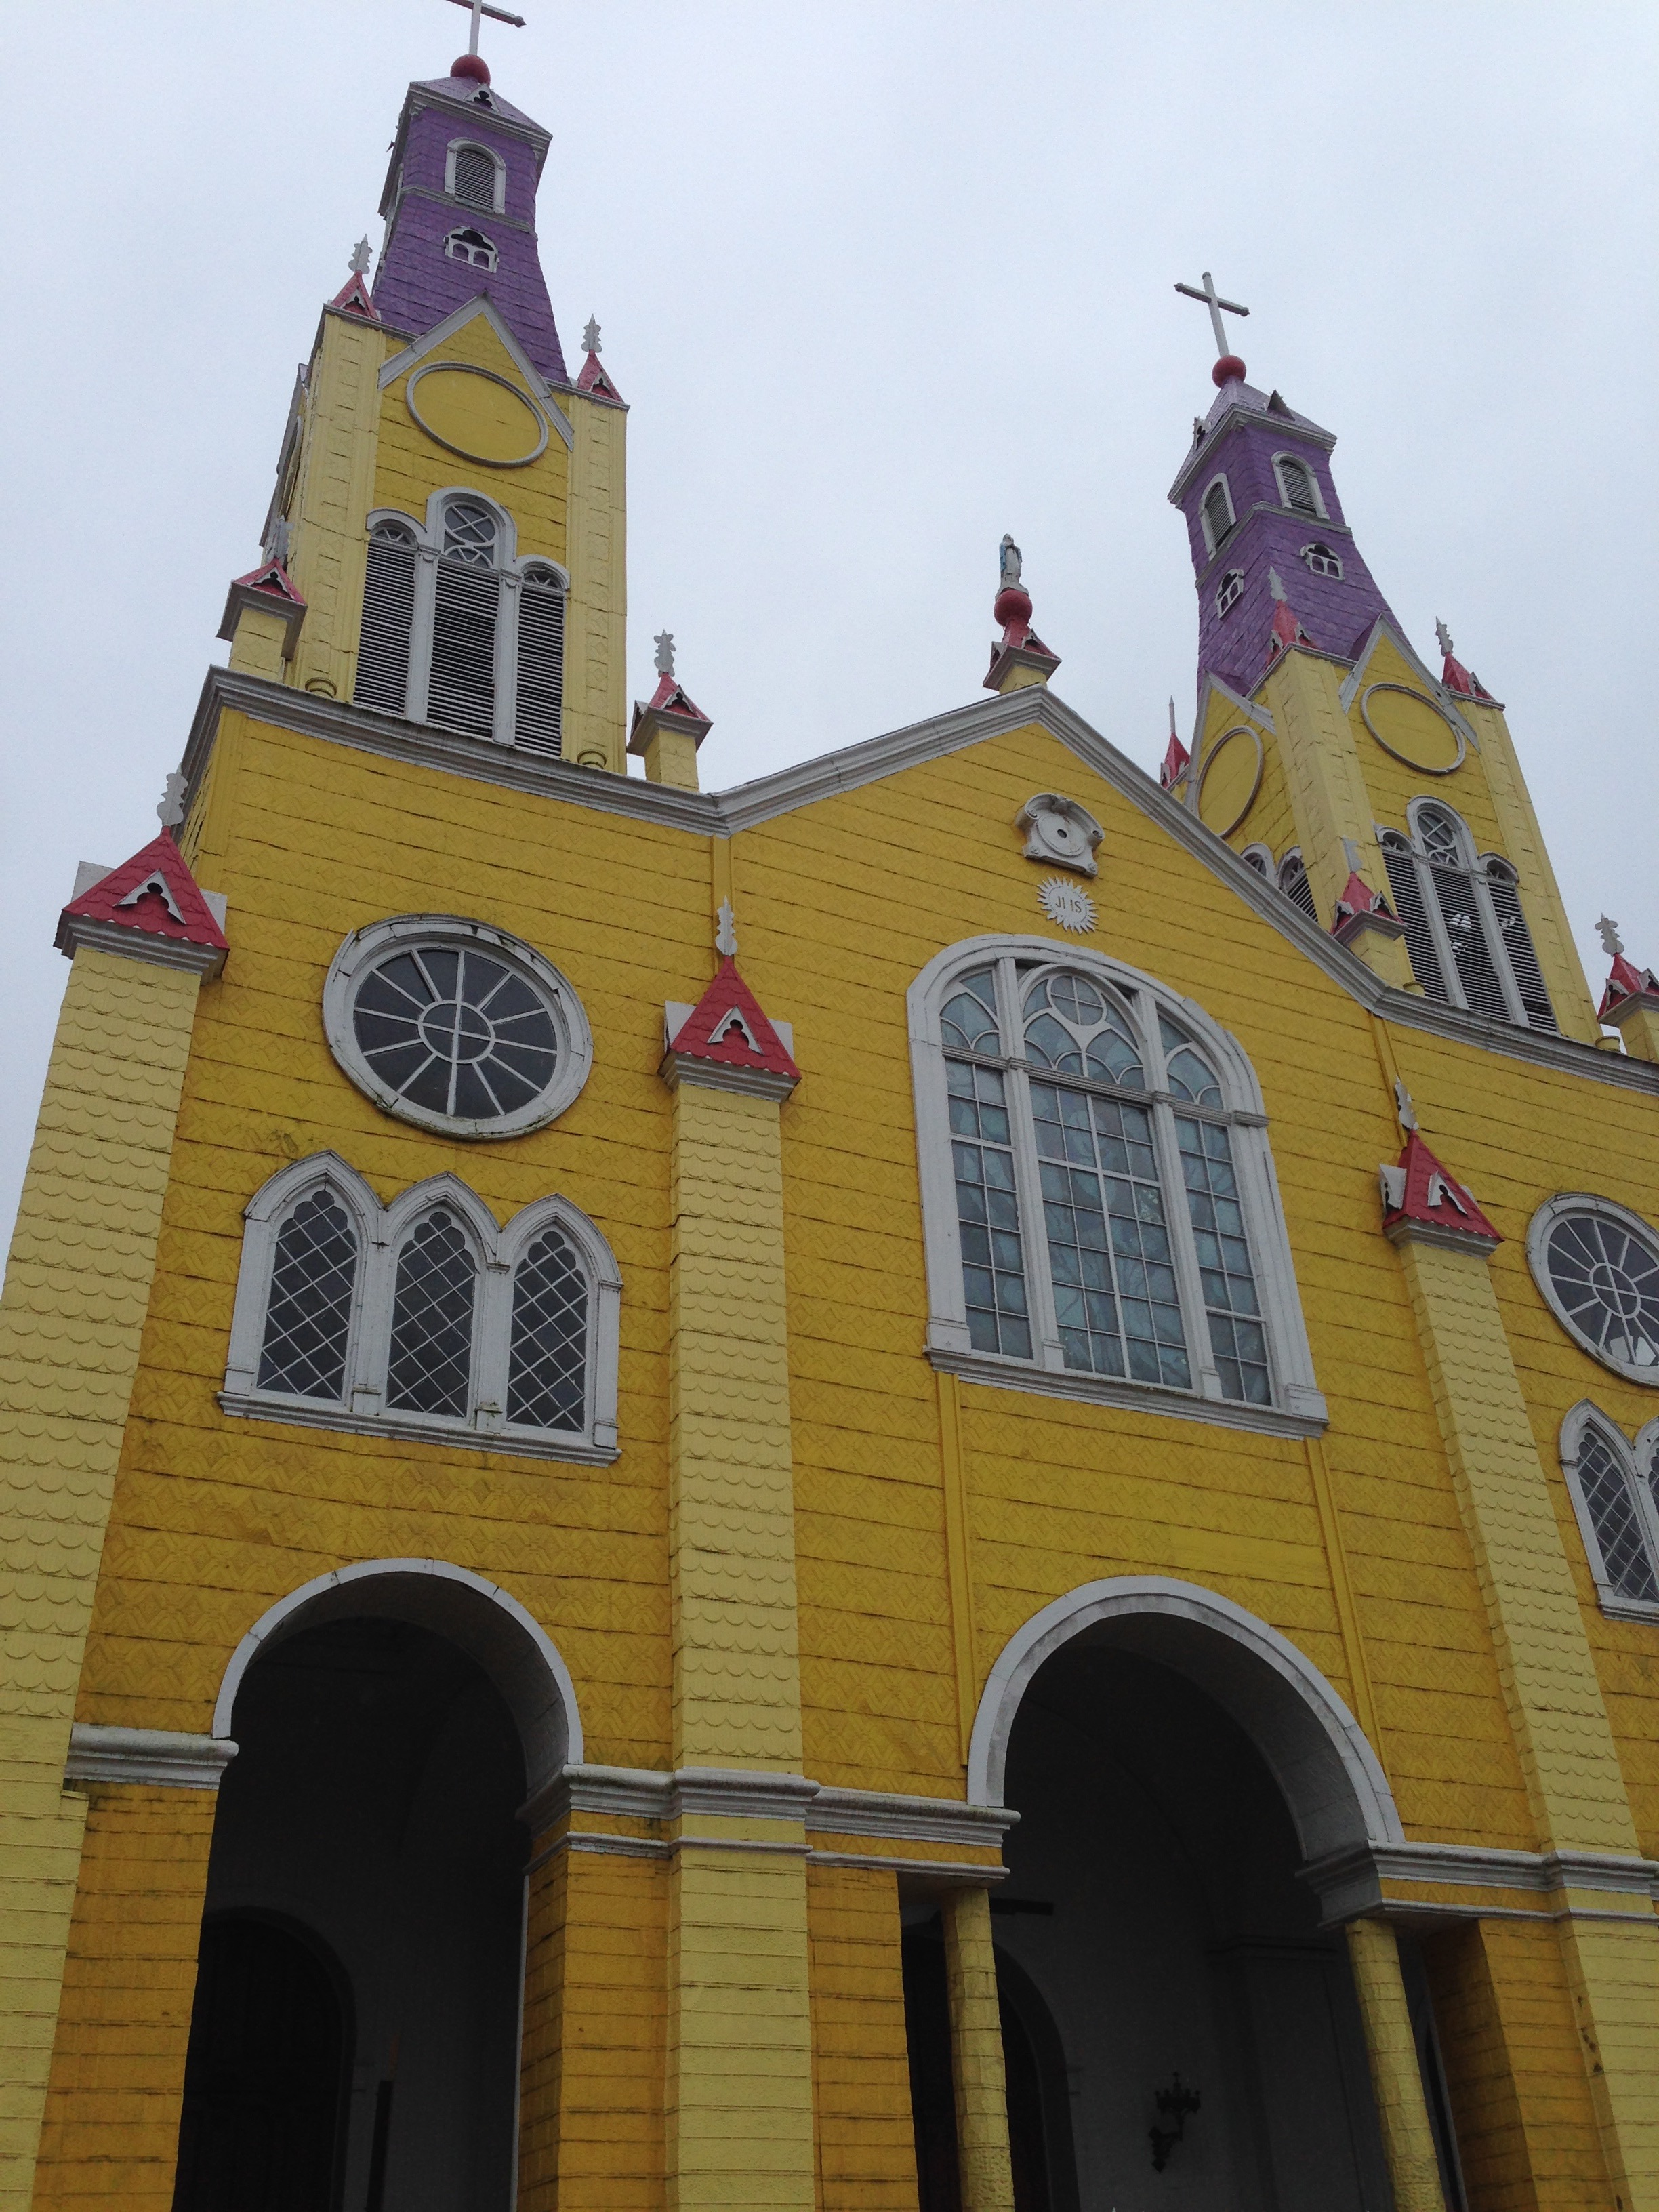 The Iglesia de San Francisco in Castro.